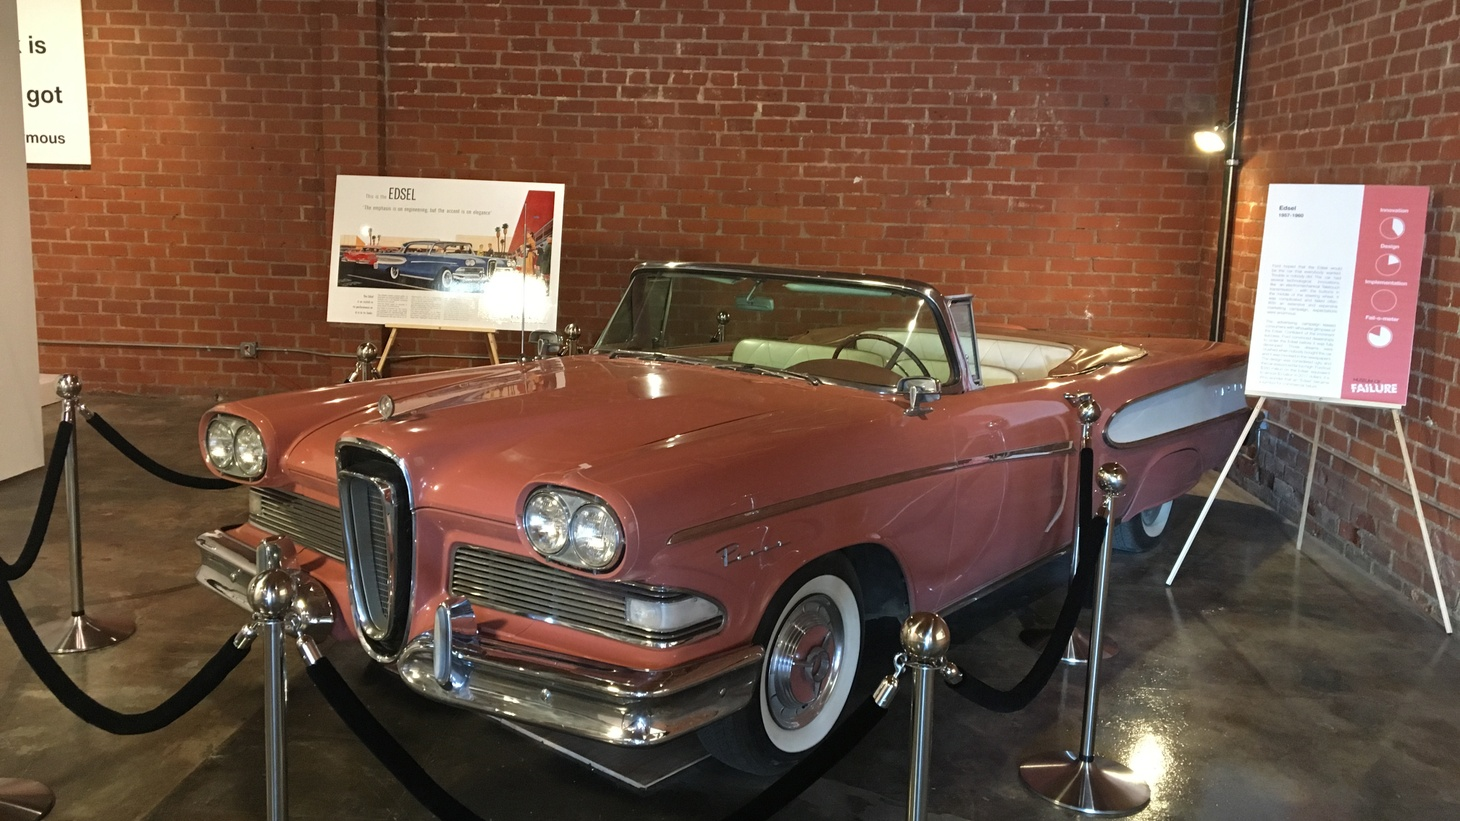 Ford overhyped the Edsel when it was introduced in 1957. Customers thought it was ugly and overpriced, and the name became synonymous with corporate failure.